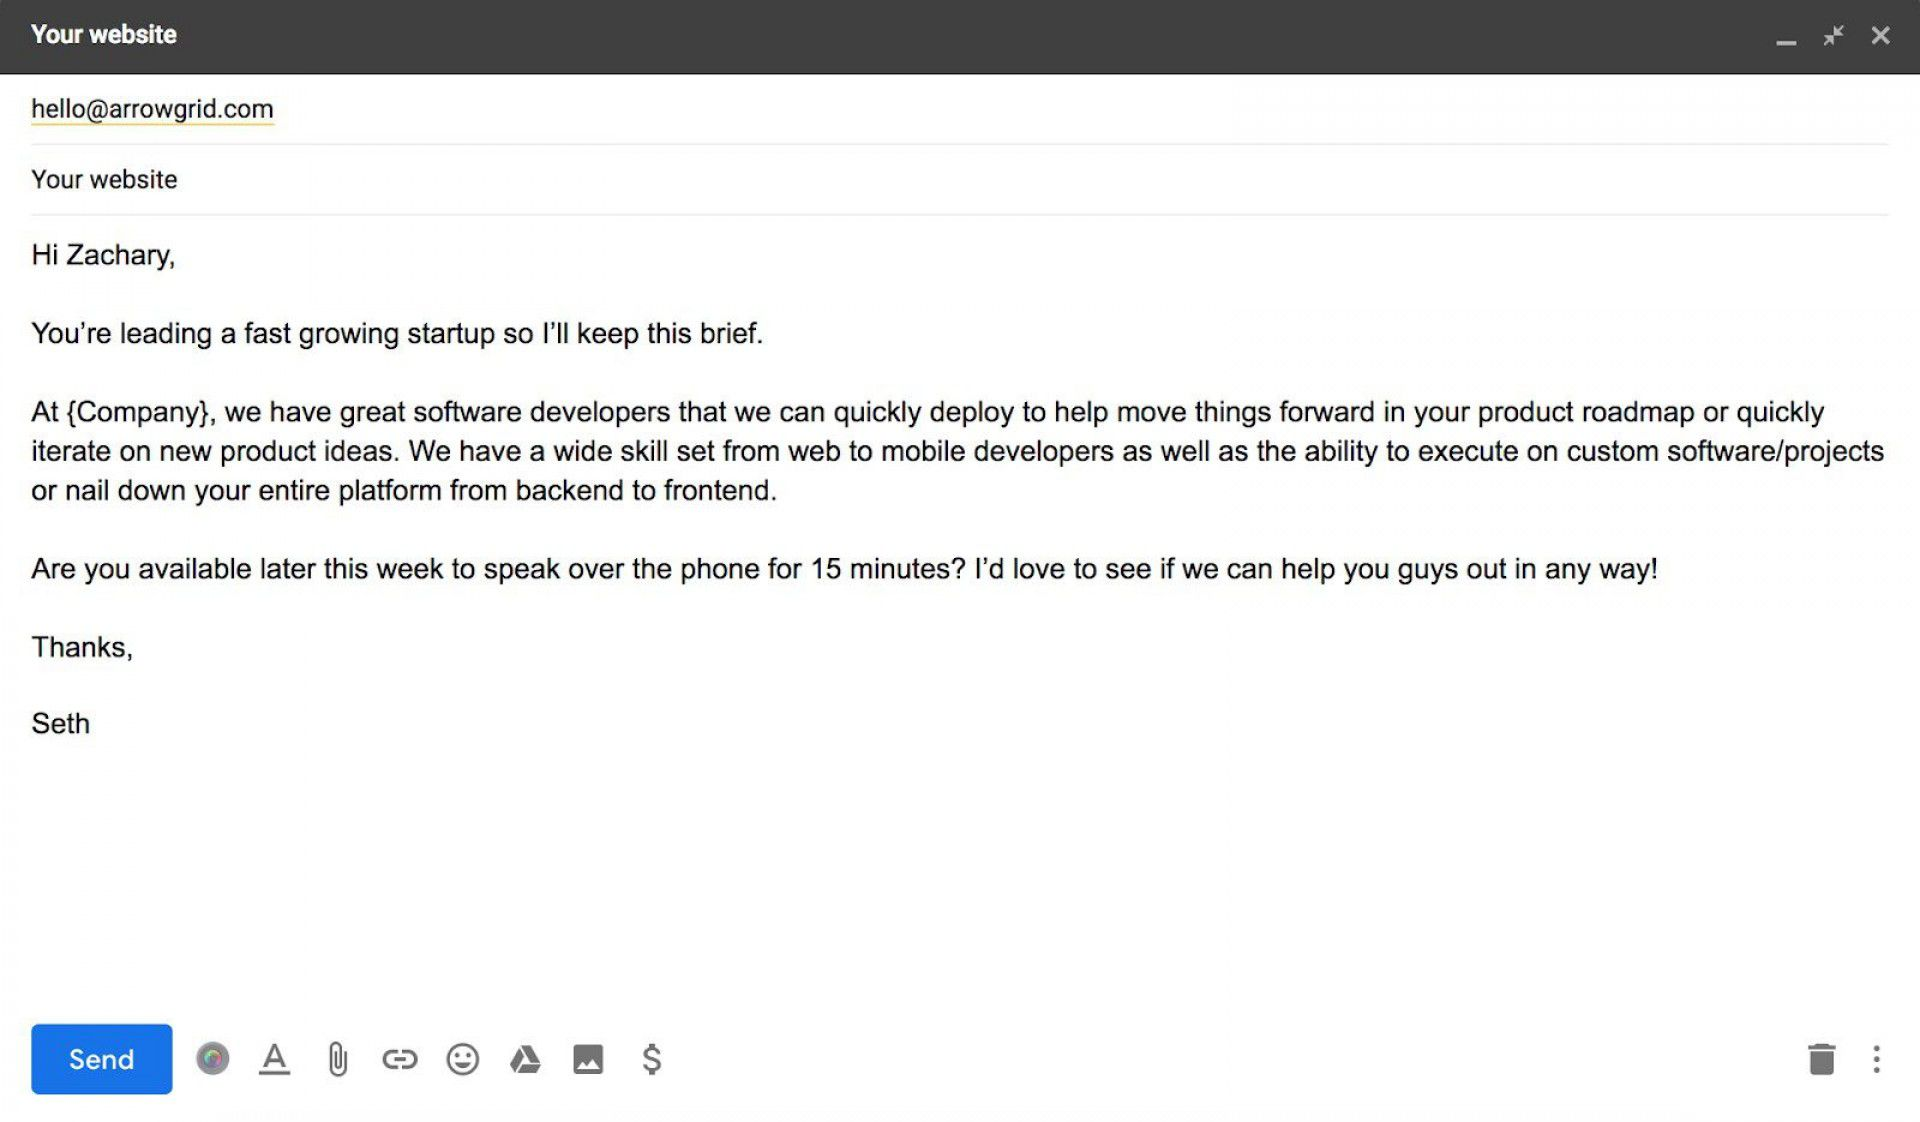 002 Incredible Follow Up Email Template After No Response Sample Full